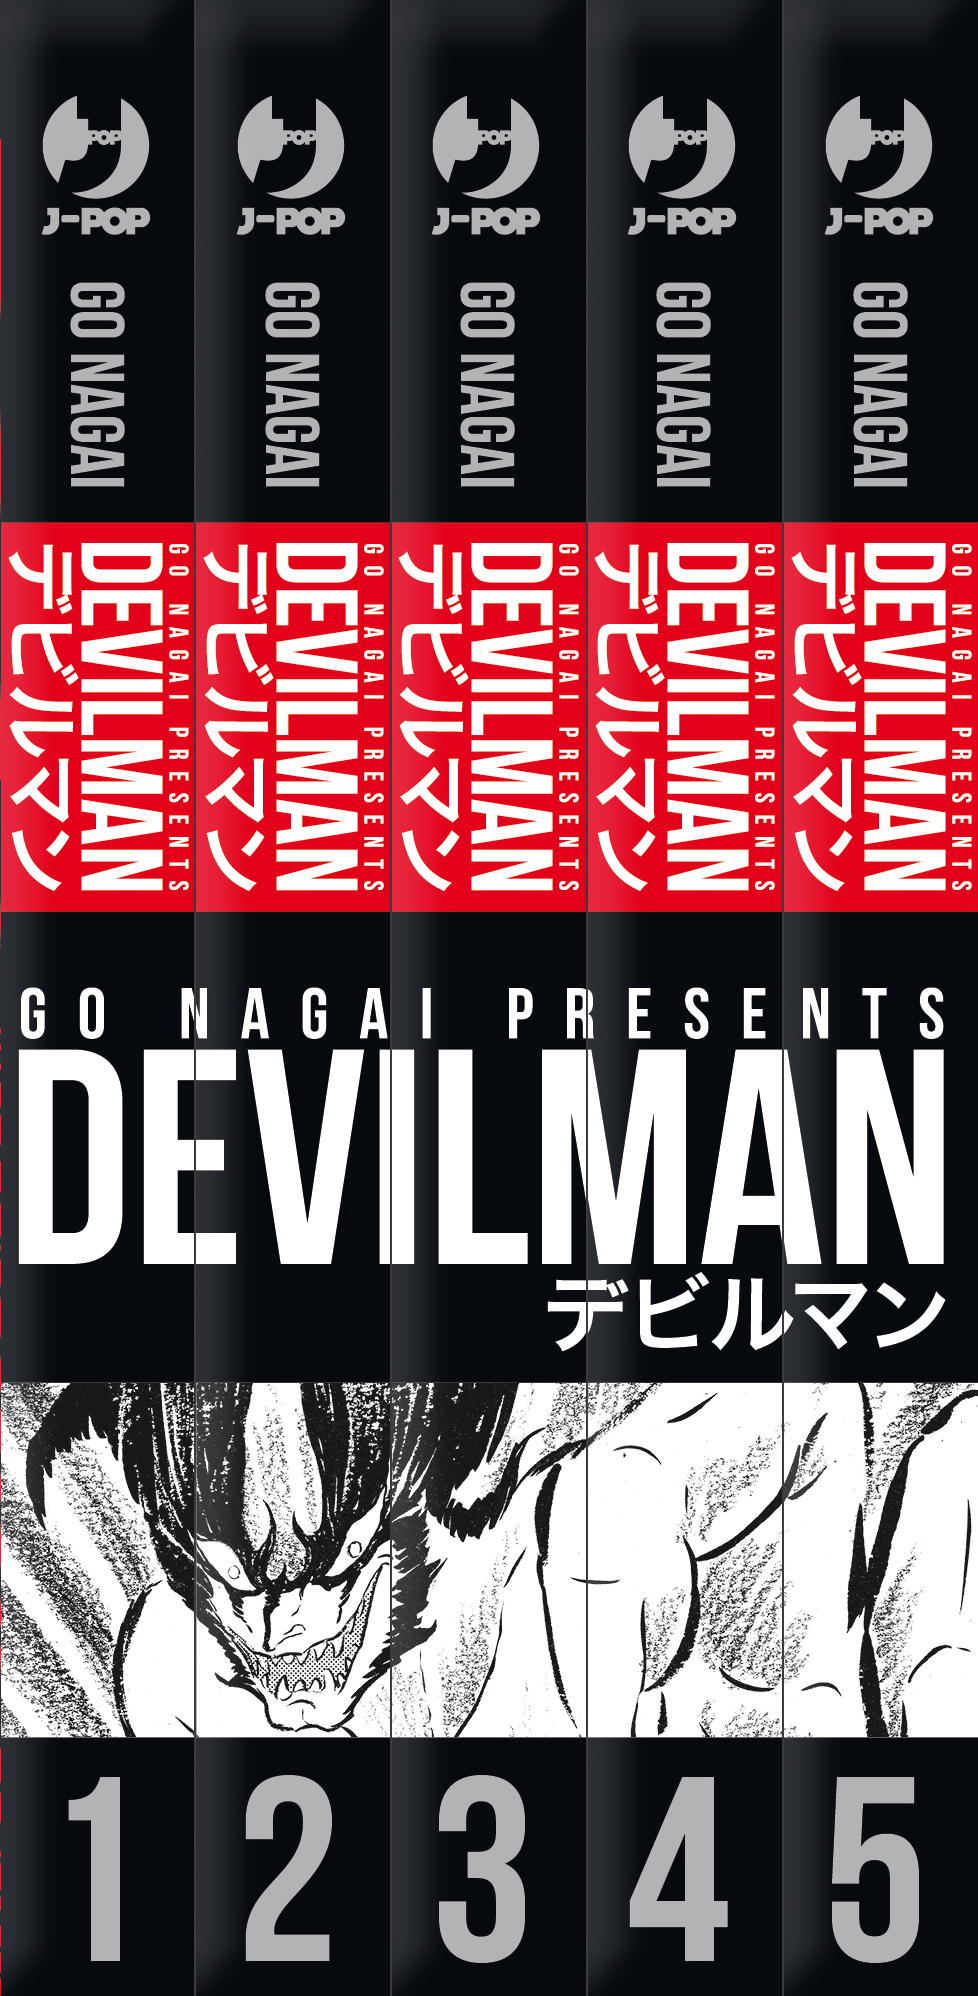 devilman go nagai manga coste volumi box collezione j-pop gp publishing